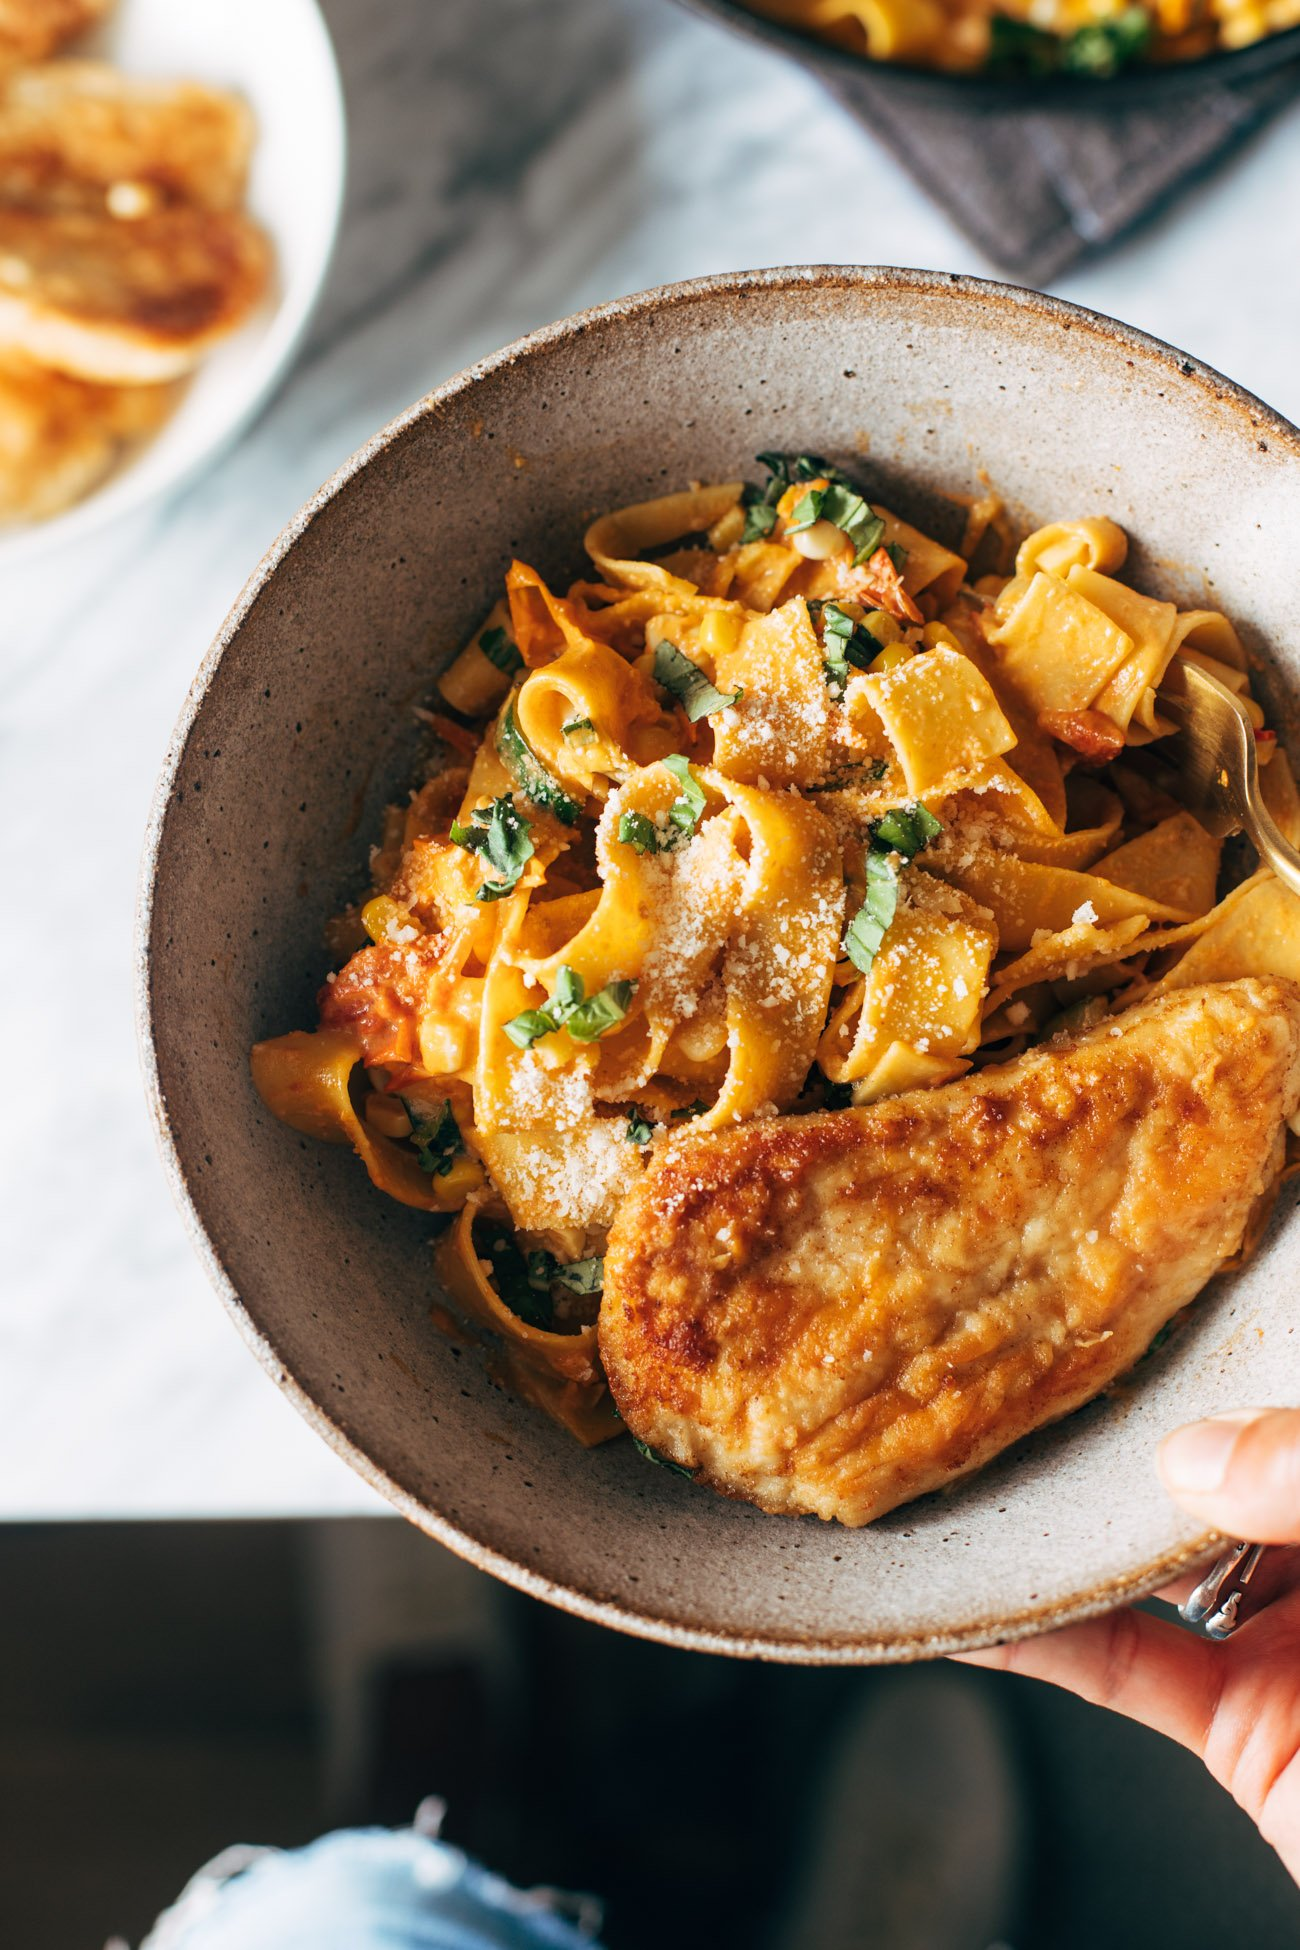 Burst tomato pappardelle in a bowl with a white hand holding the bowl. There's a pan-fried piece of chicken on top of the pasta.